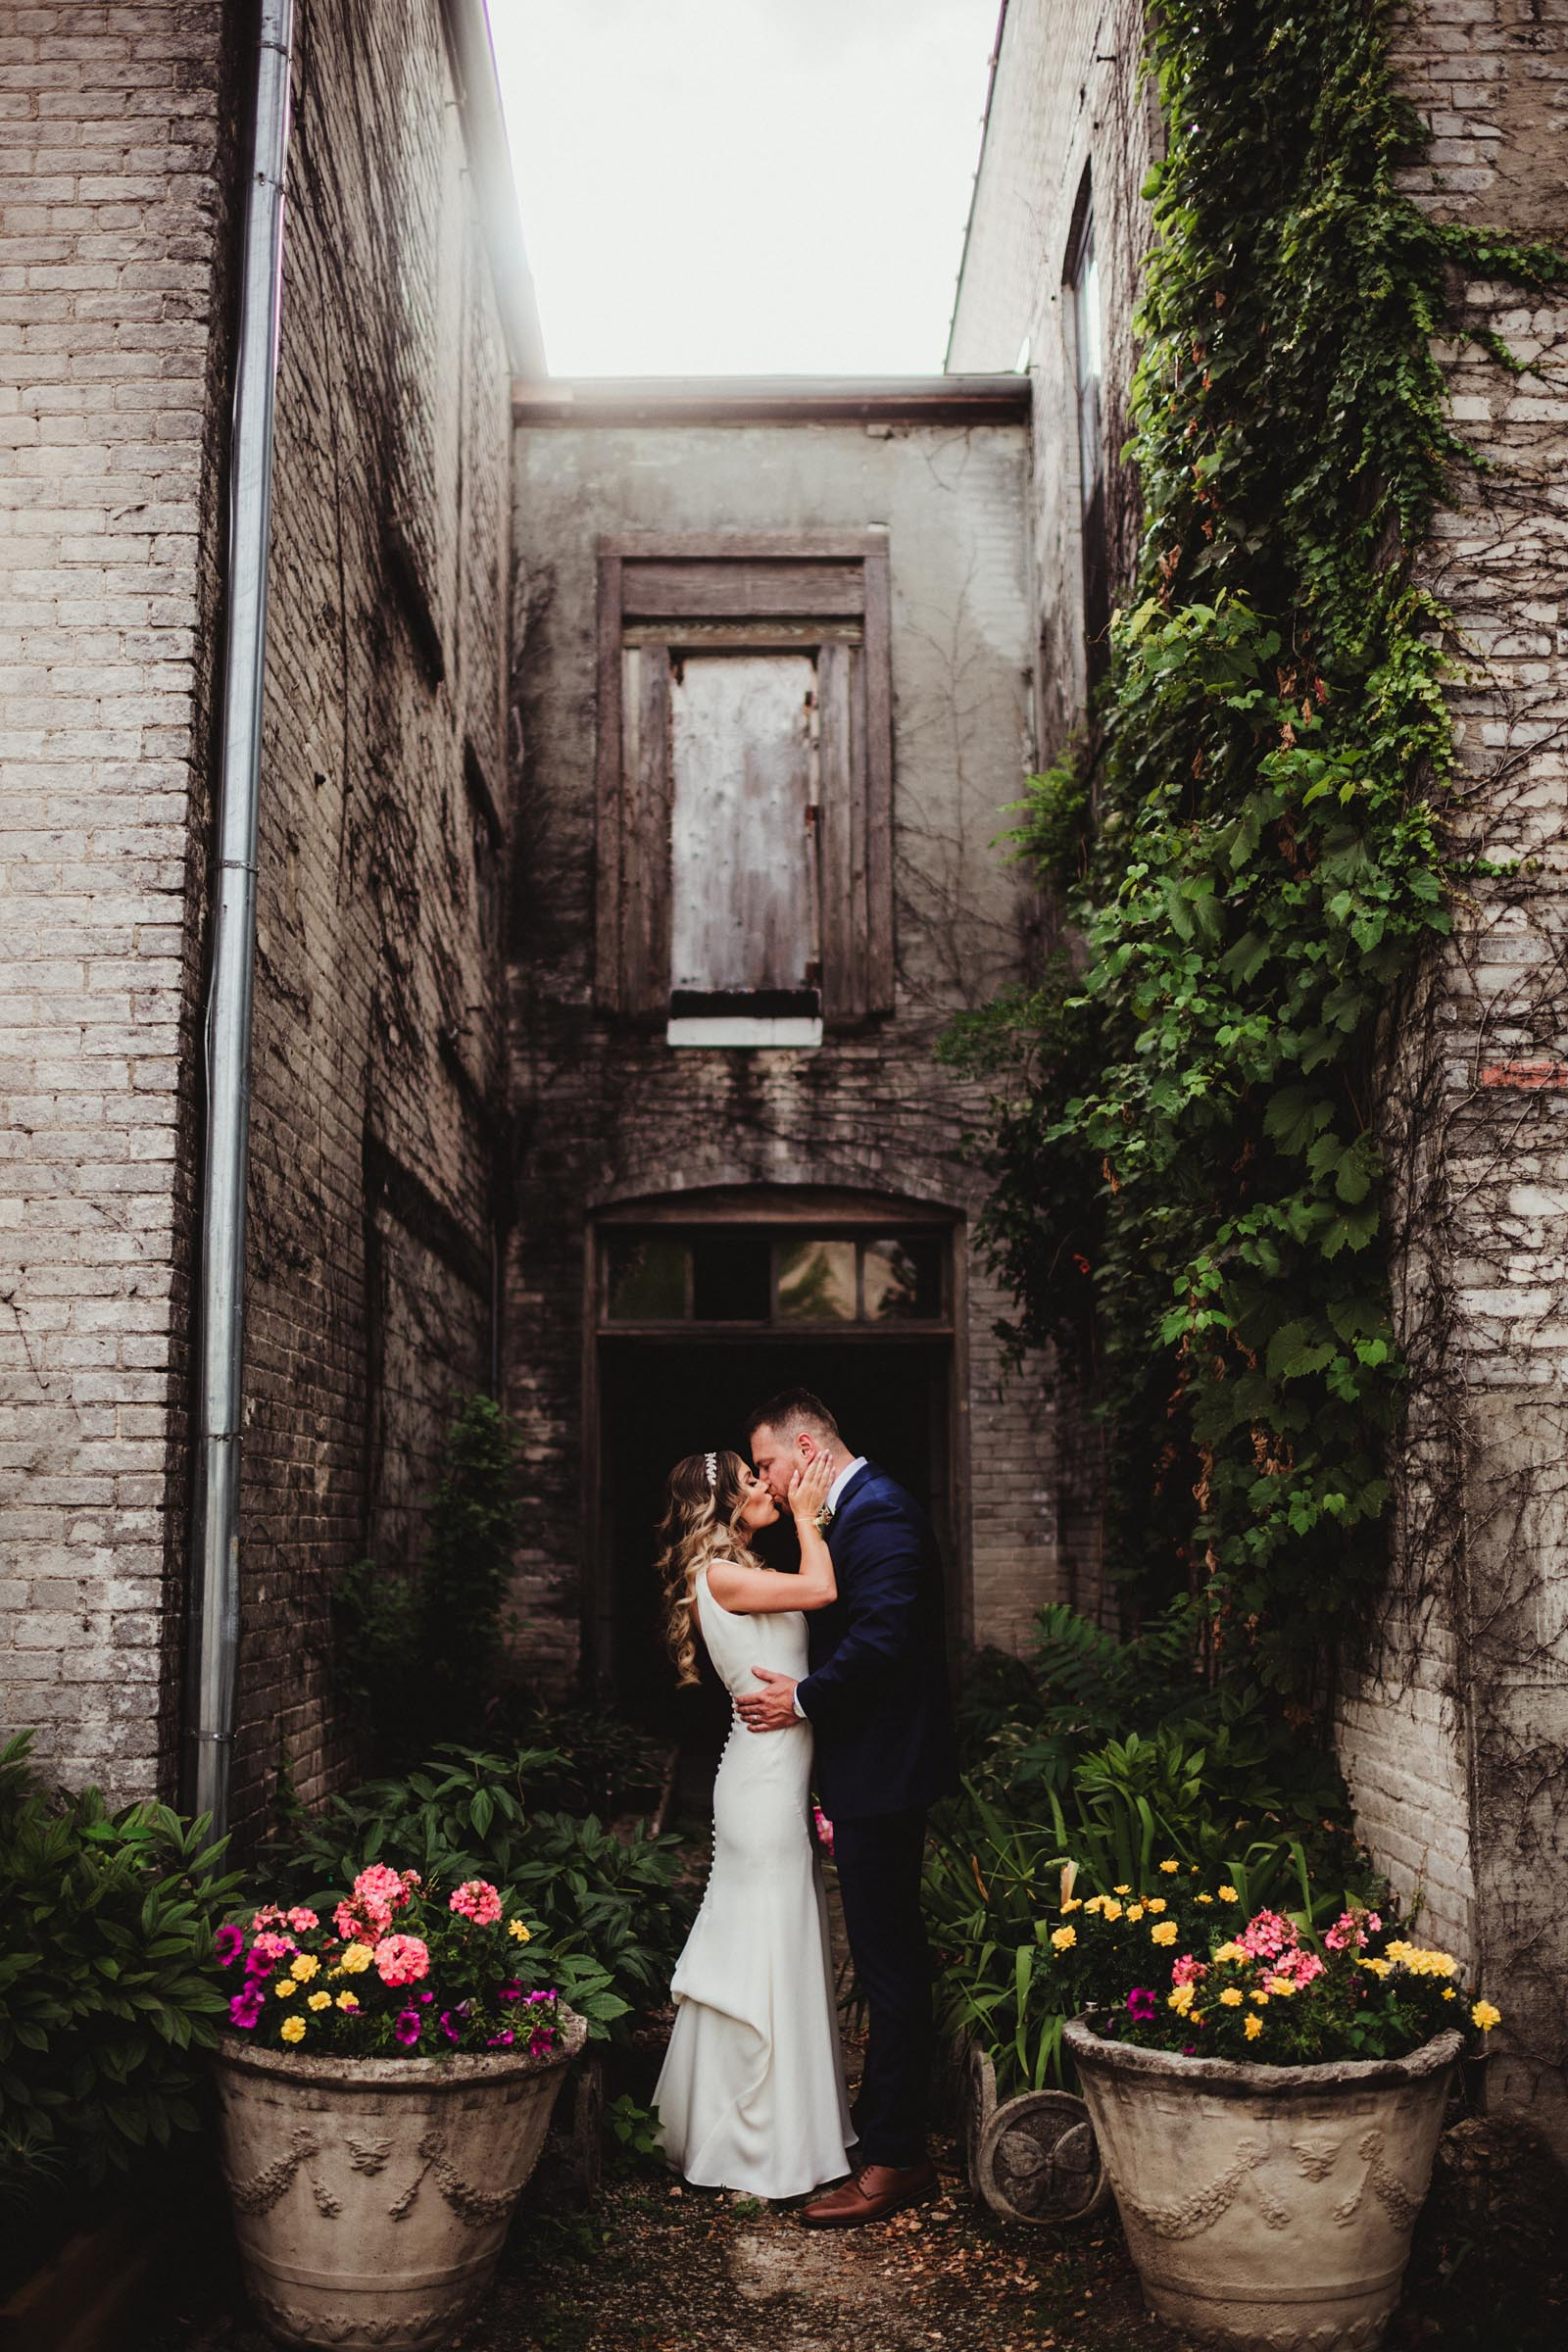 Bride Groom Kissing in Alley